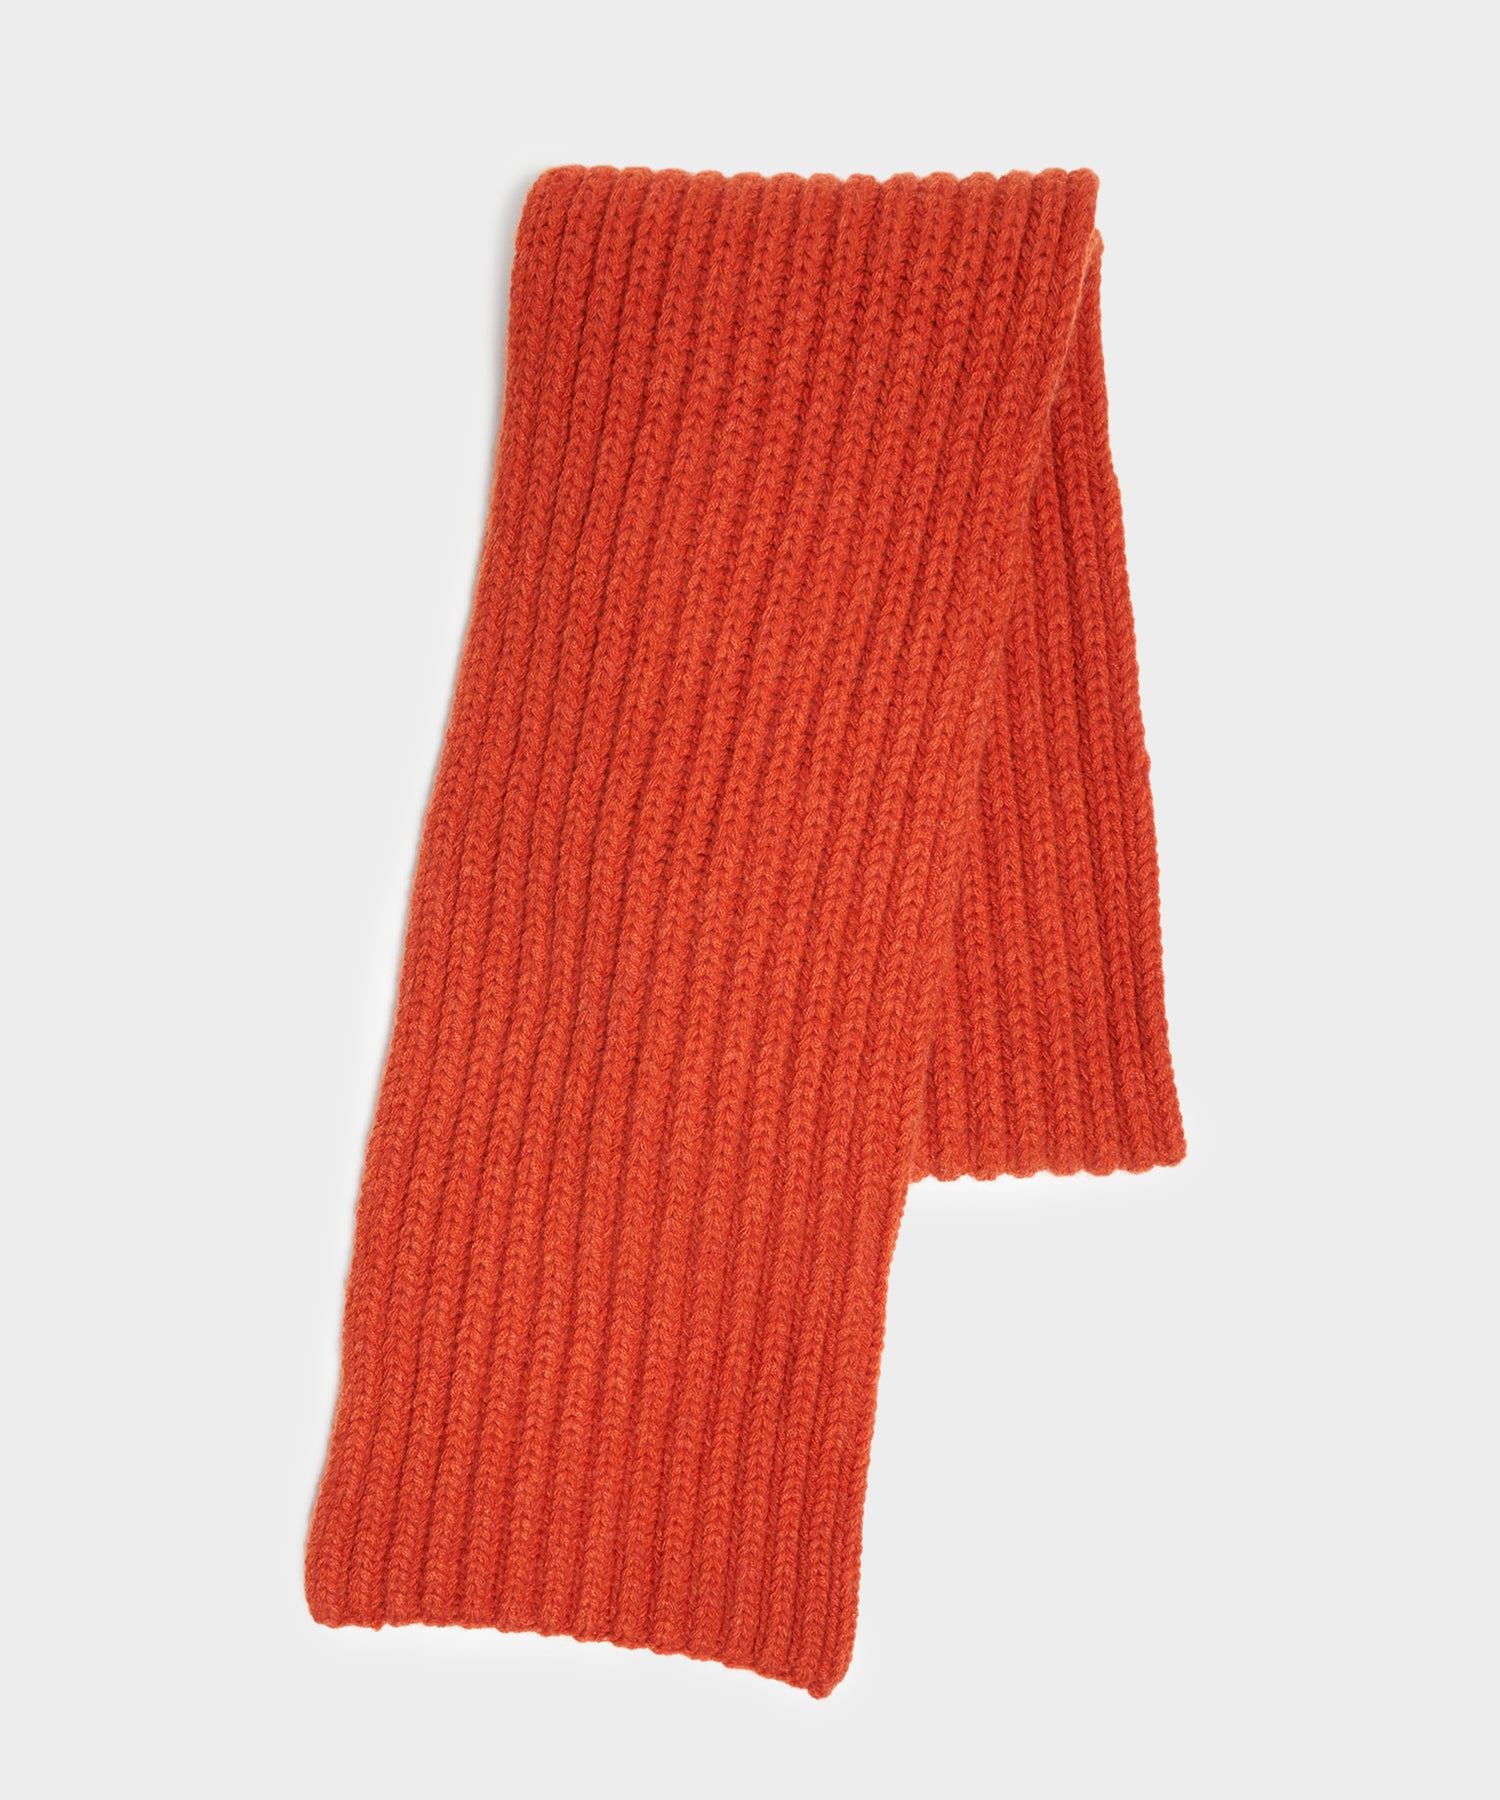 Corgi Wool Cashmere Ribbed Scarf in Furnace